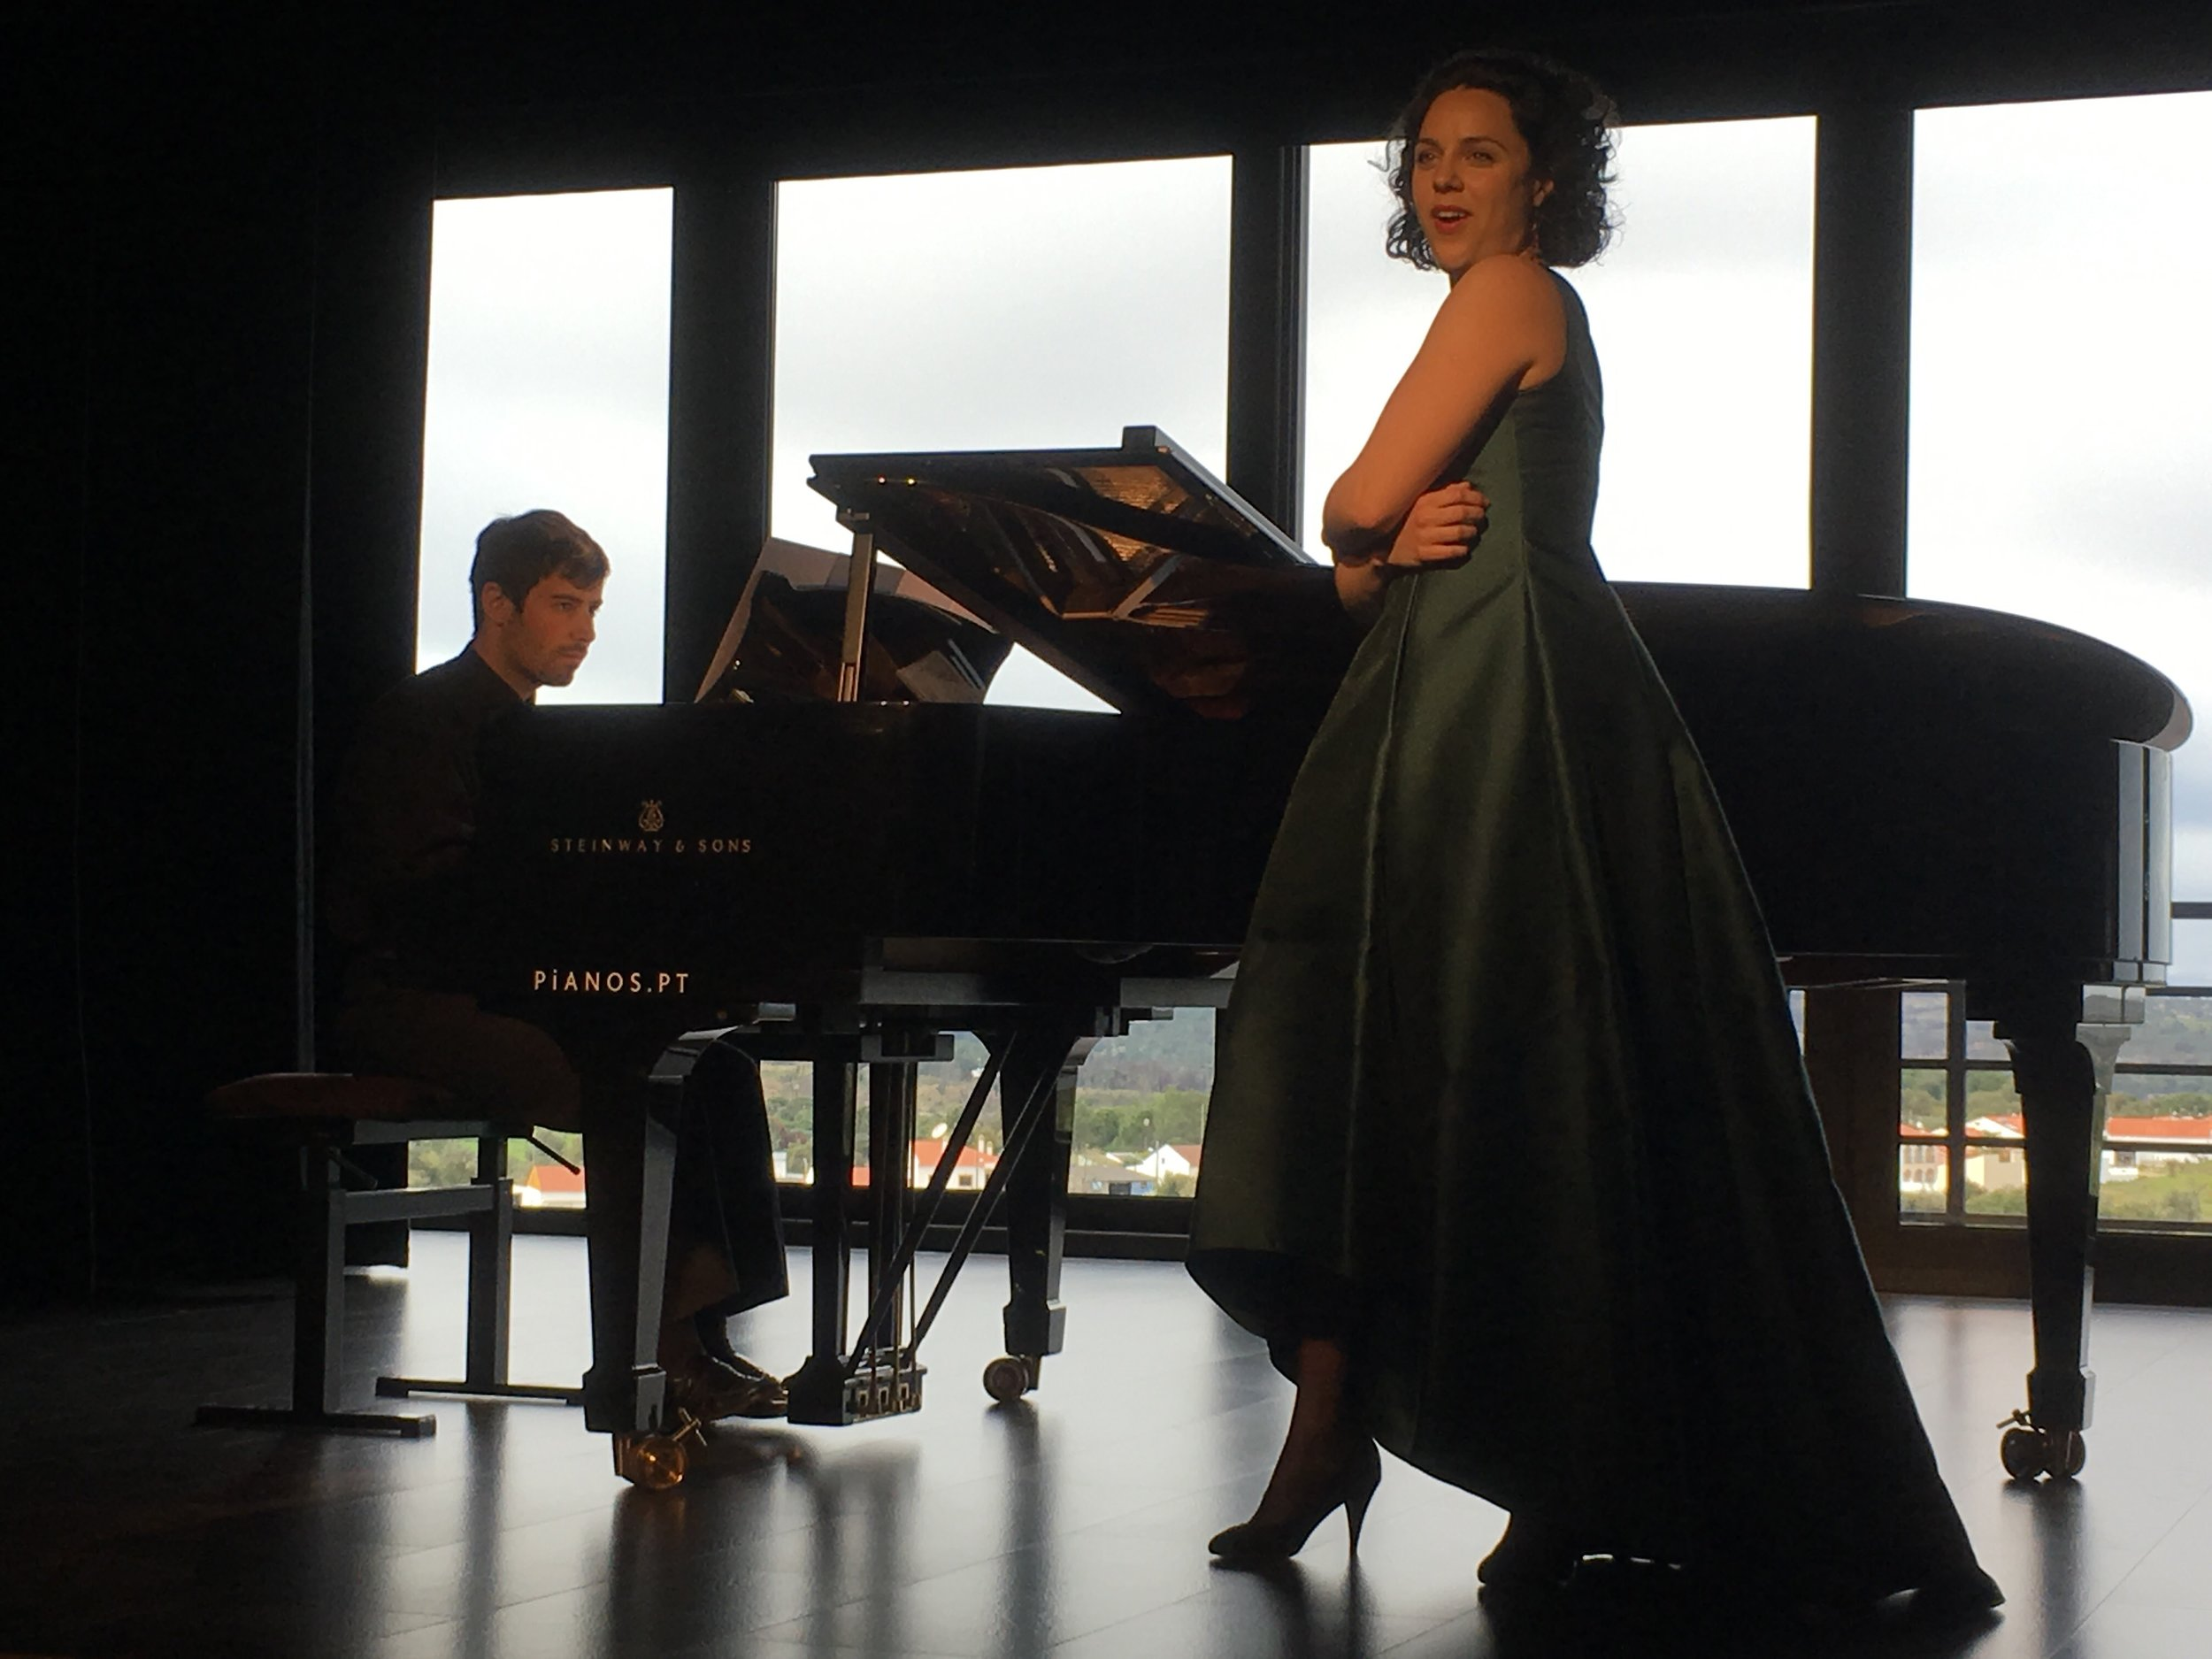 Recital with Stefano Amitrano, at Centro Cultural de Montargil